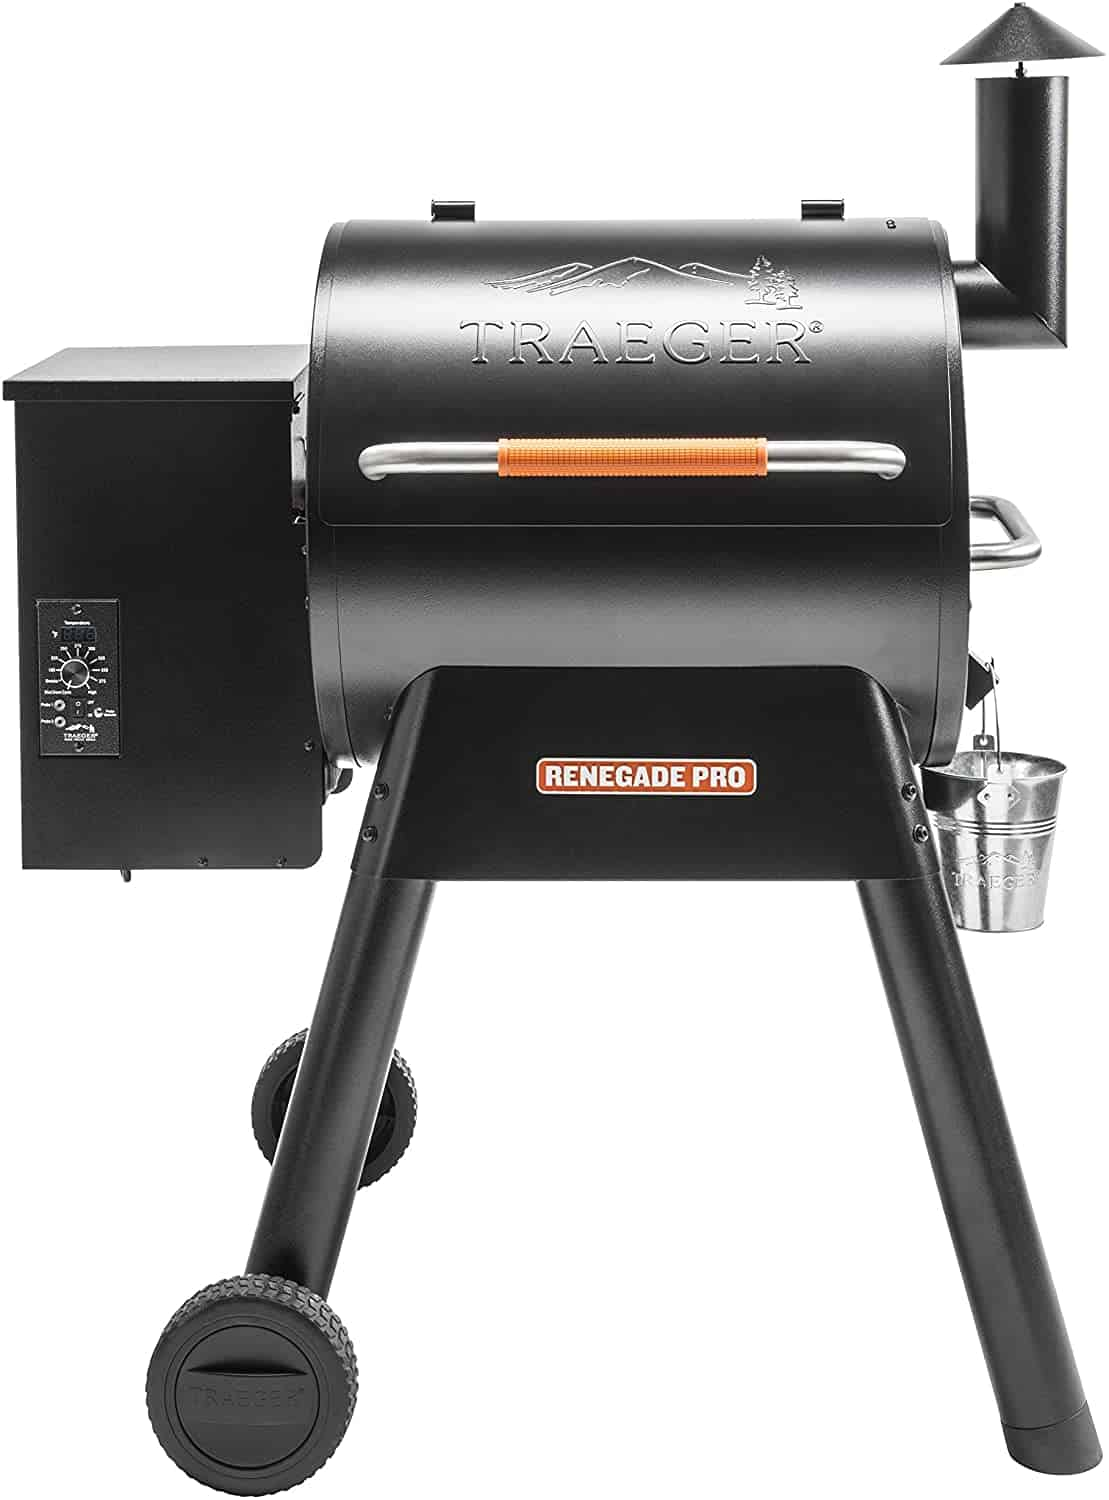 Most durable Traeger Grills Renegade Pro Wood Pellet Grill